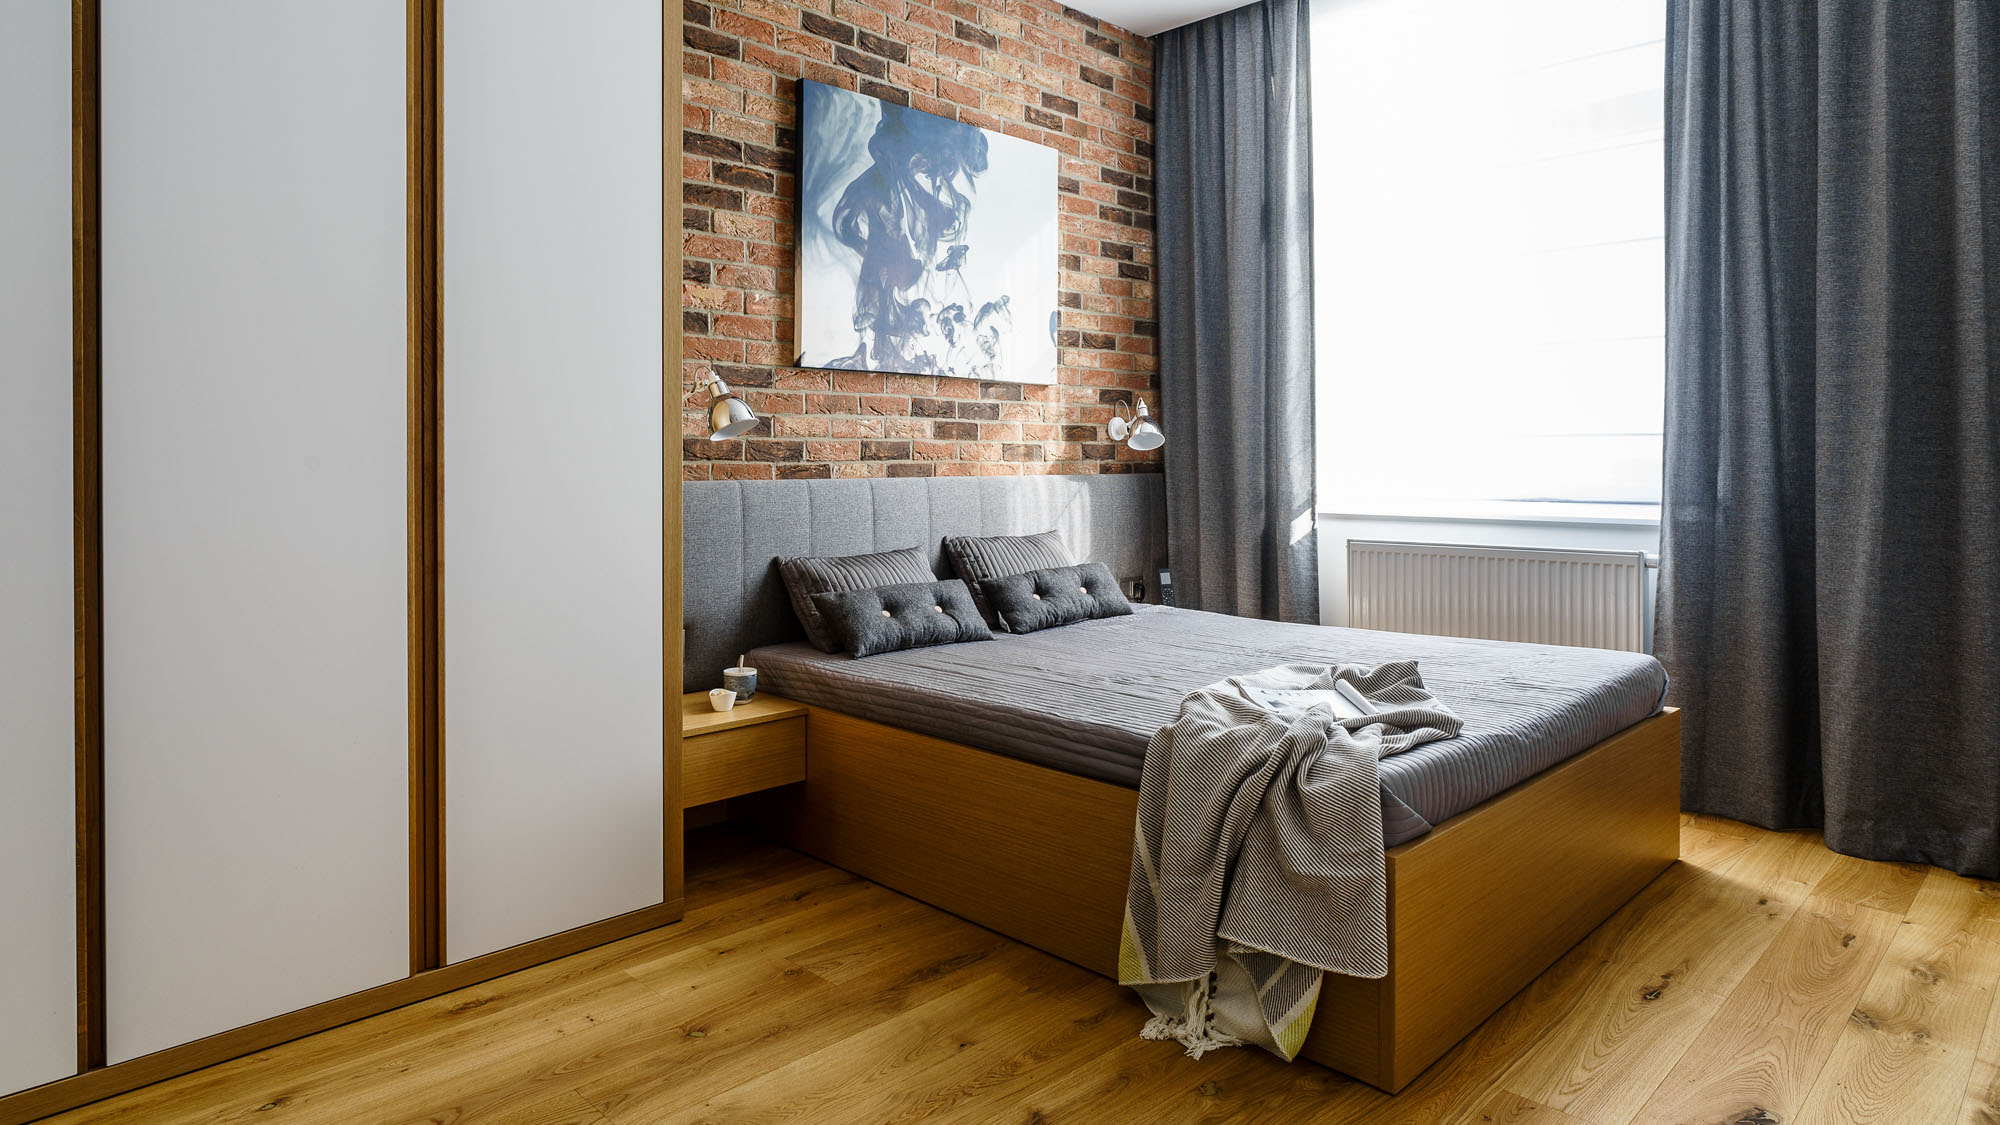 Modern Metallic, Wooden, White Theme Three Bedroom Apartment in Gdynia by Dragon Art-28